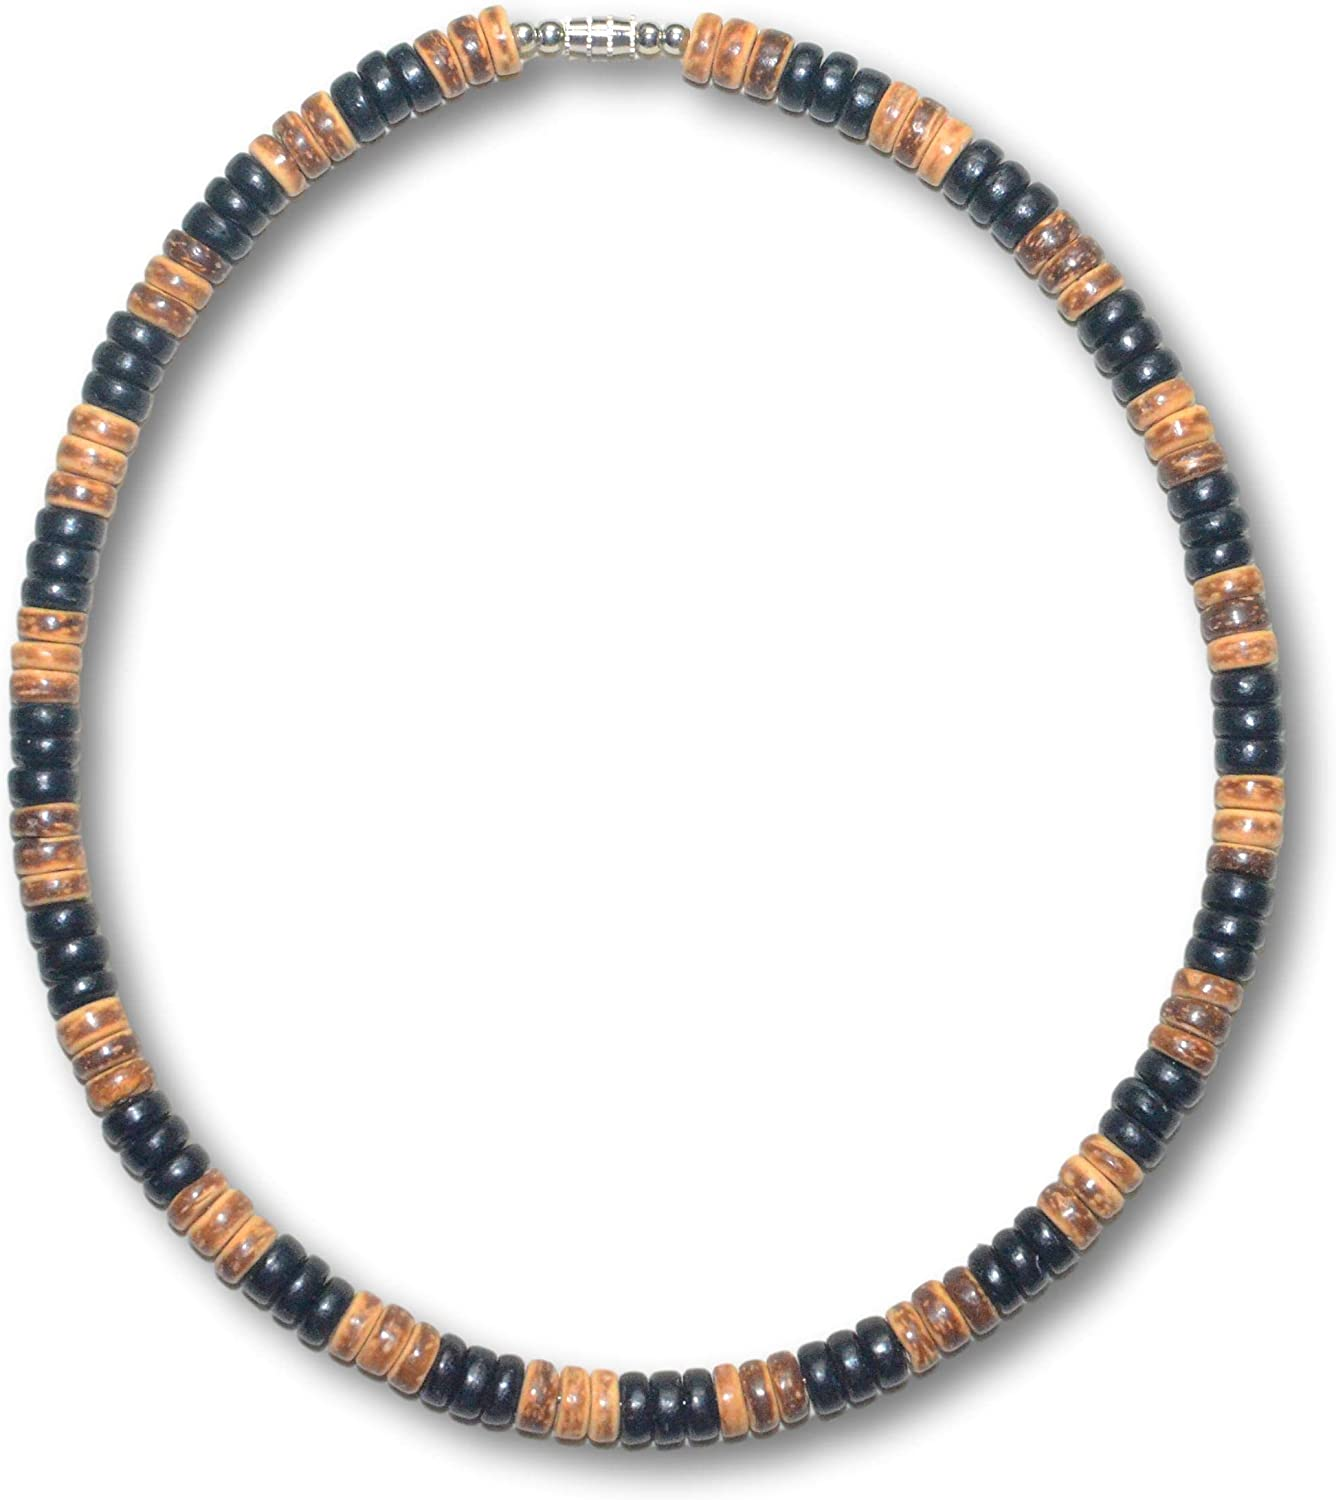 Native Treasure 14inch to 22 inch Real Wood 3 Black 3 Tiger Coco Bead Surfer Necklace Sturdy Twist Lock Clasp - 8mm (5/16